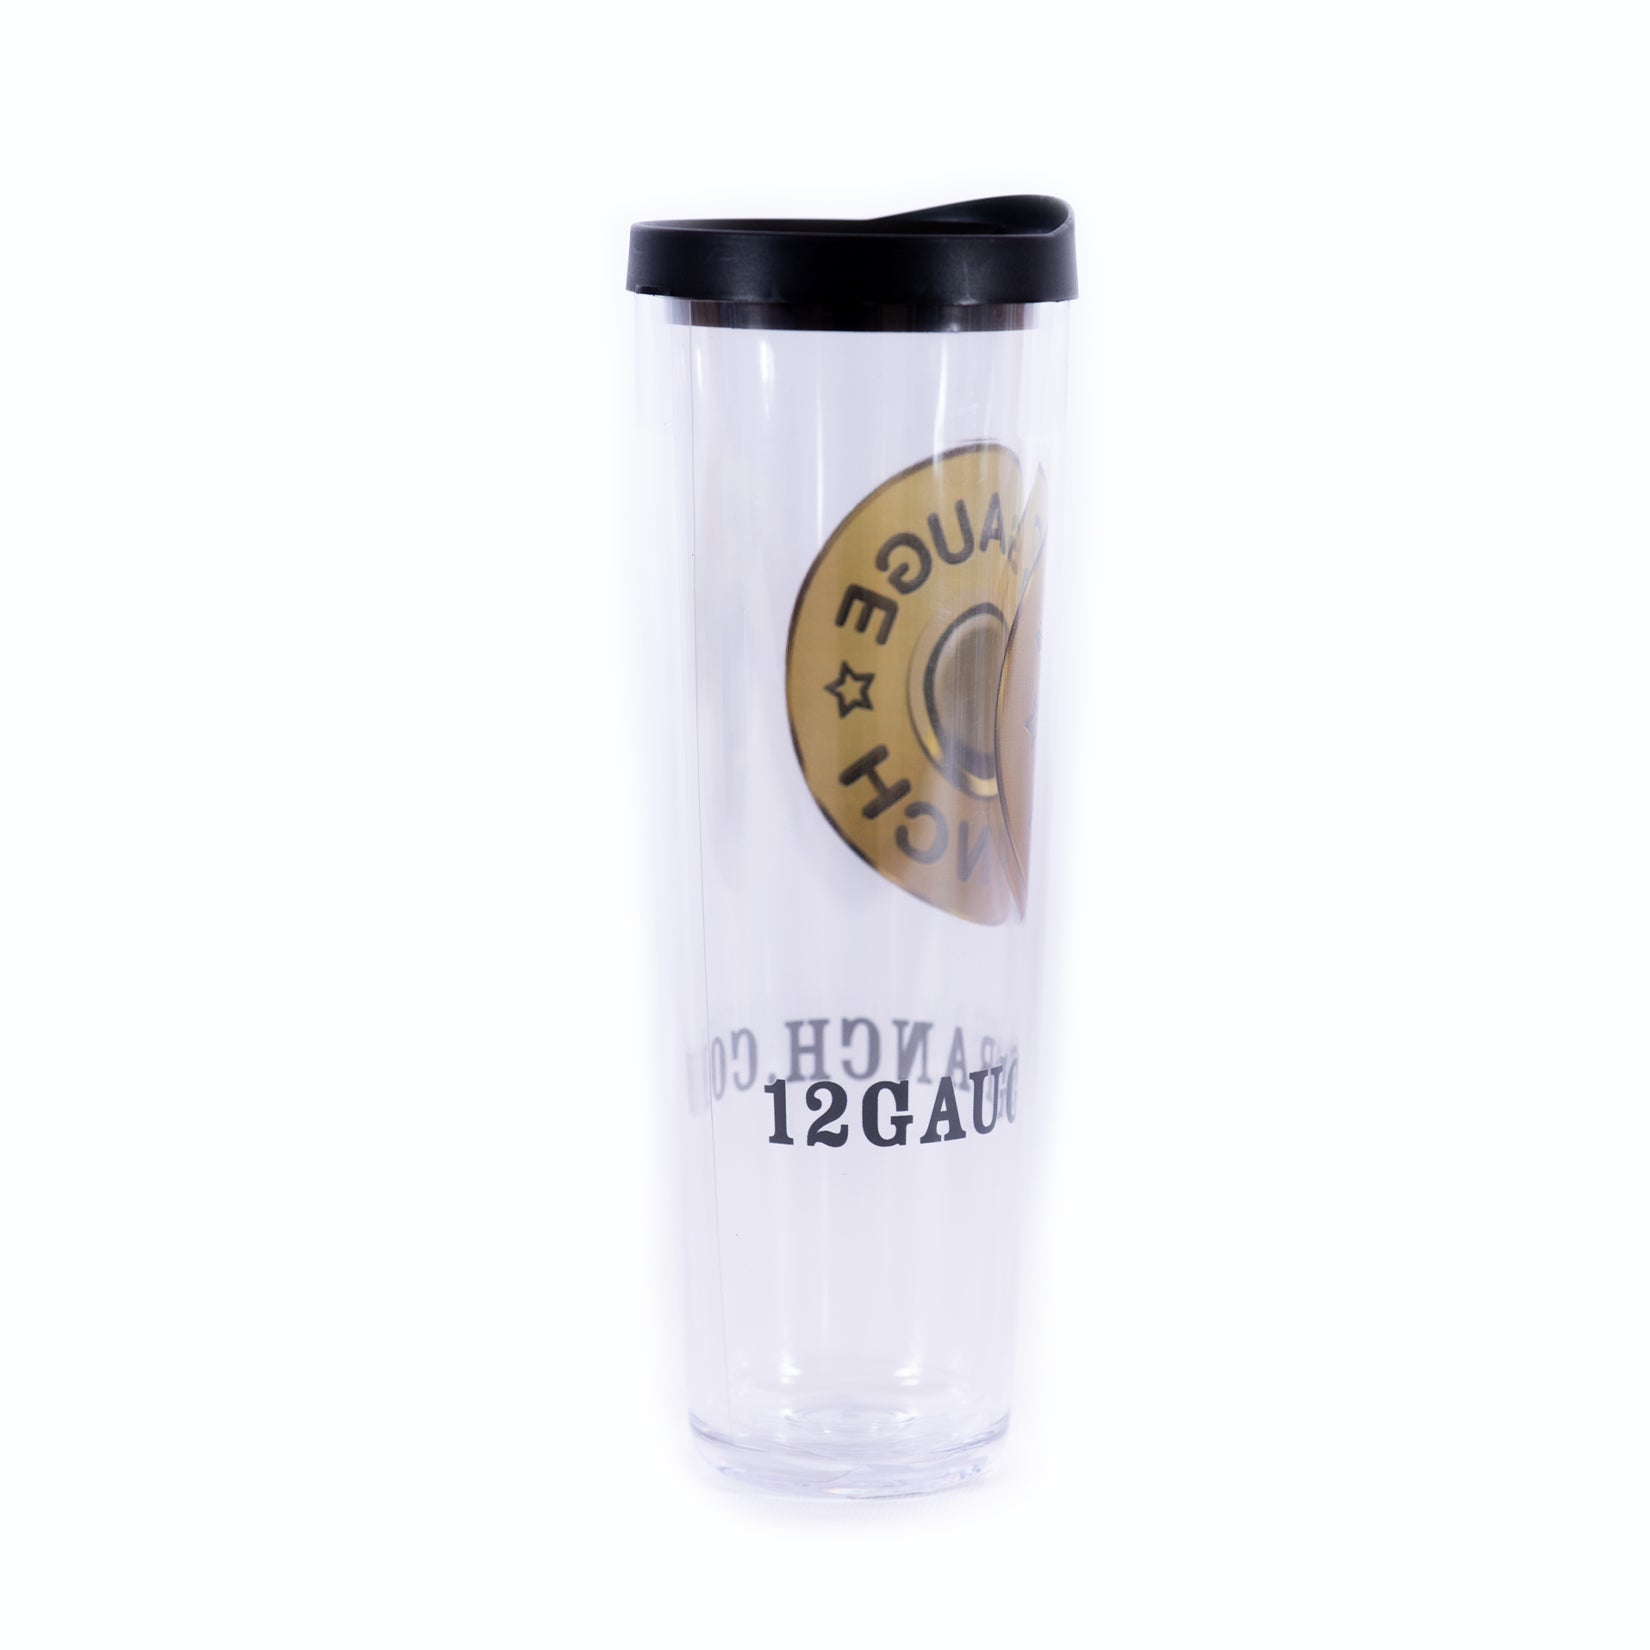 12 Gauge Bullet 24oz Insulated Covo Cup, Accessories, 12 Gauge Ranch, 12 Gauge Ranch 12 Gauge Ranch